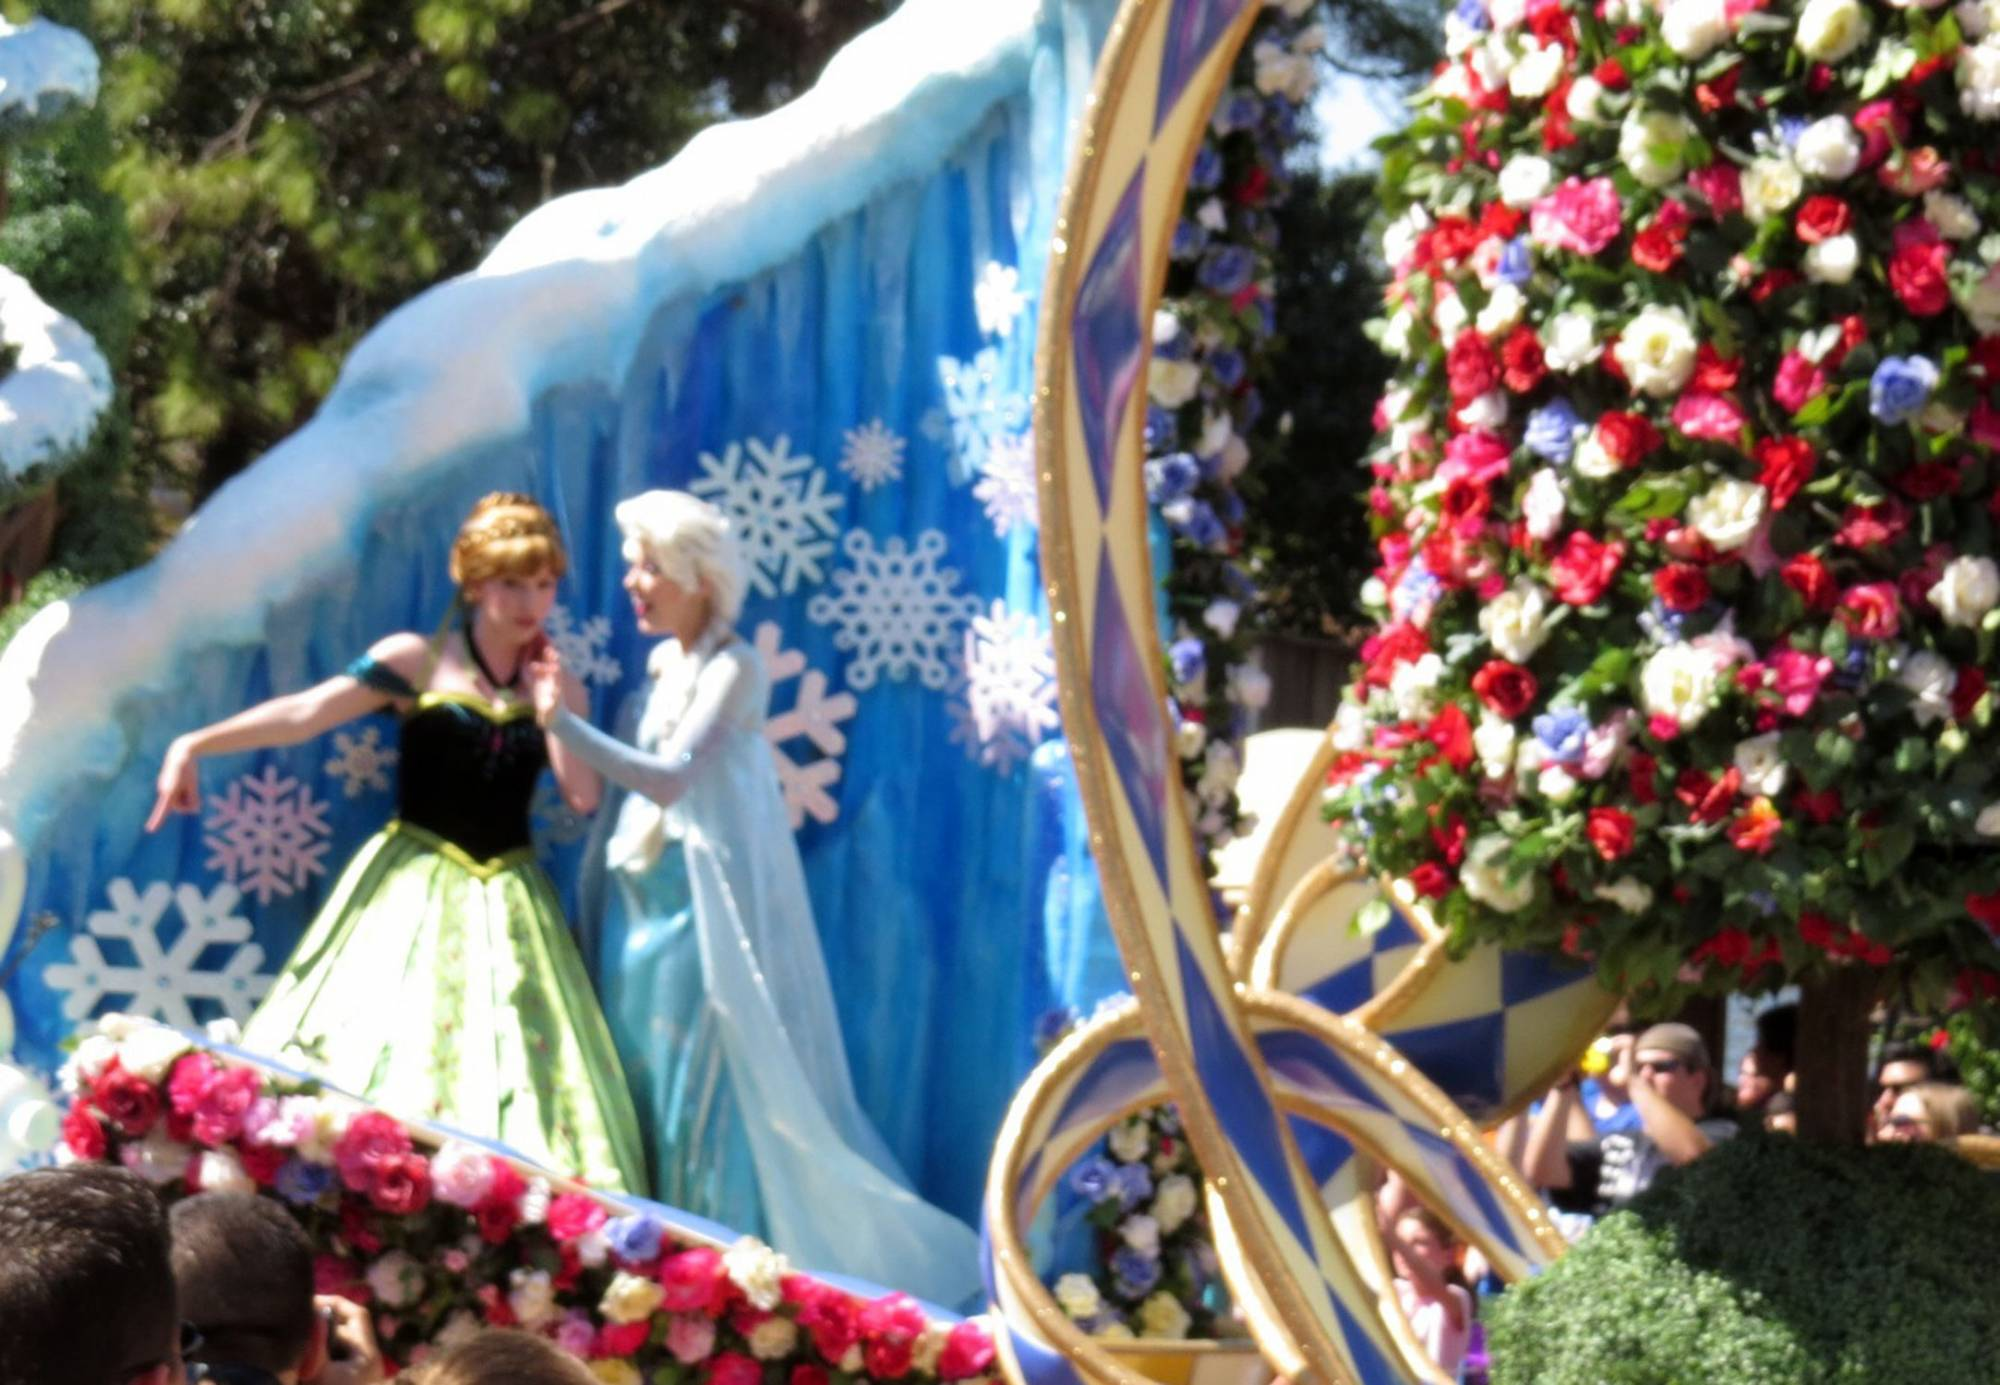 Imagine all the ways Disney could bring 'Frozen' to life at Disney theme parks |PassPorter.com